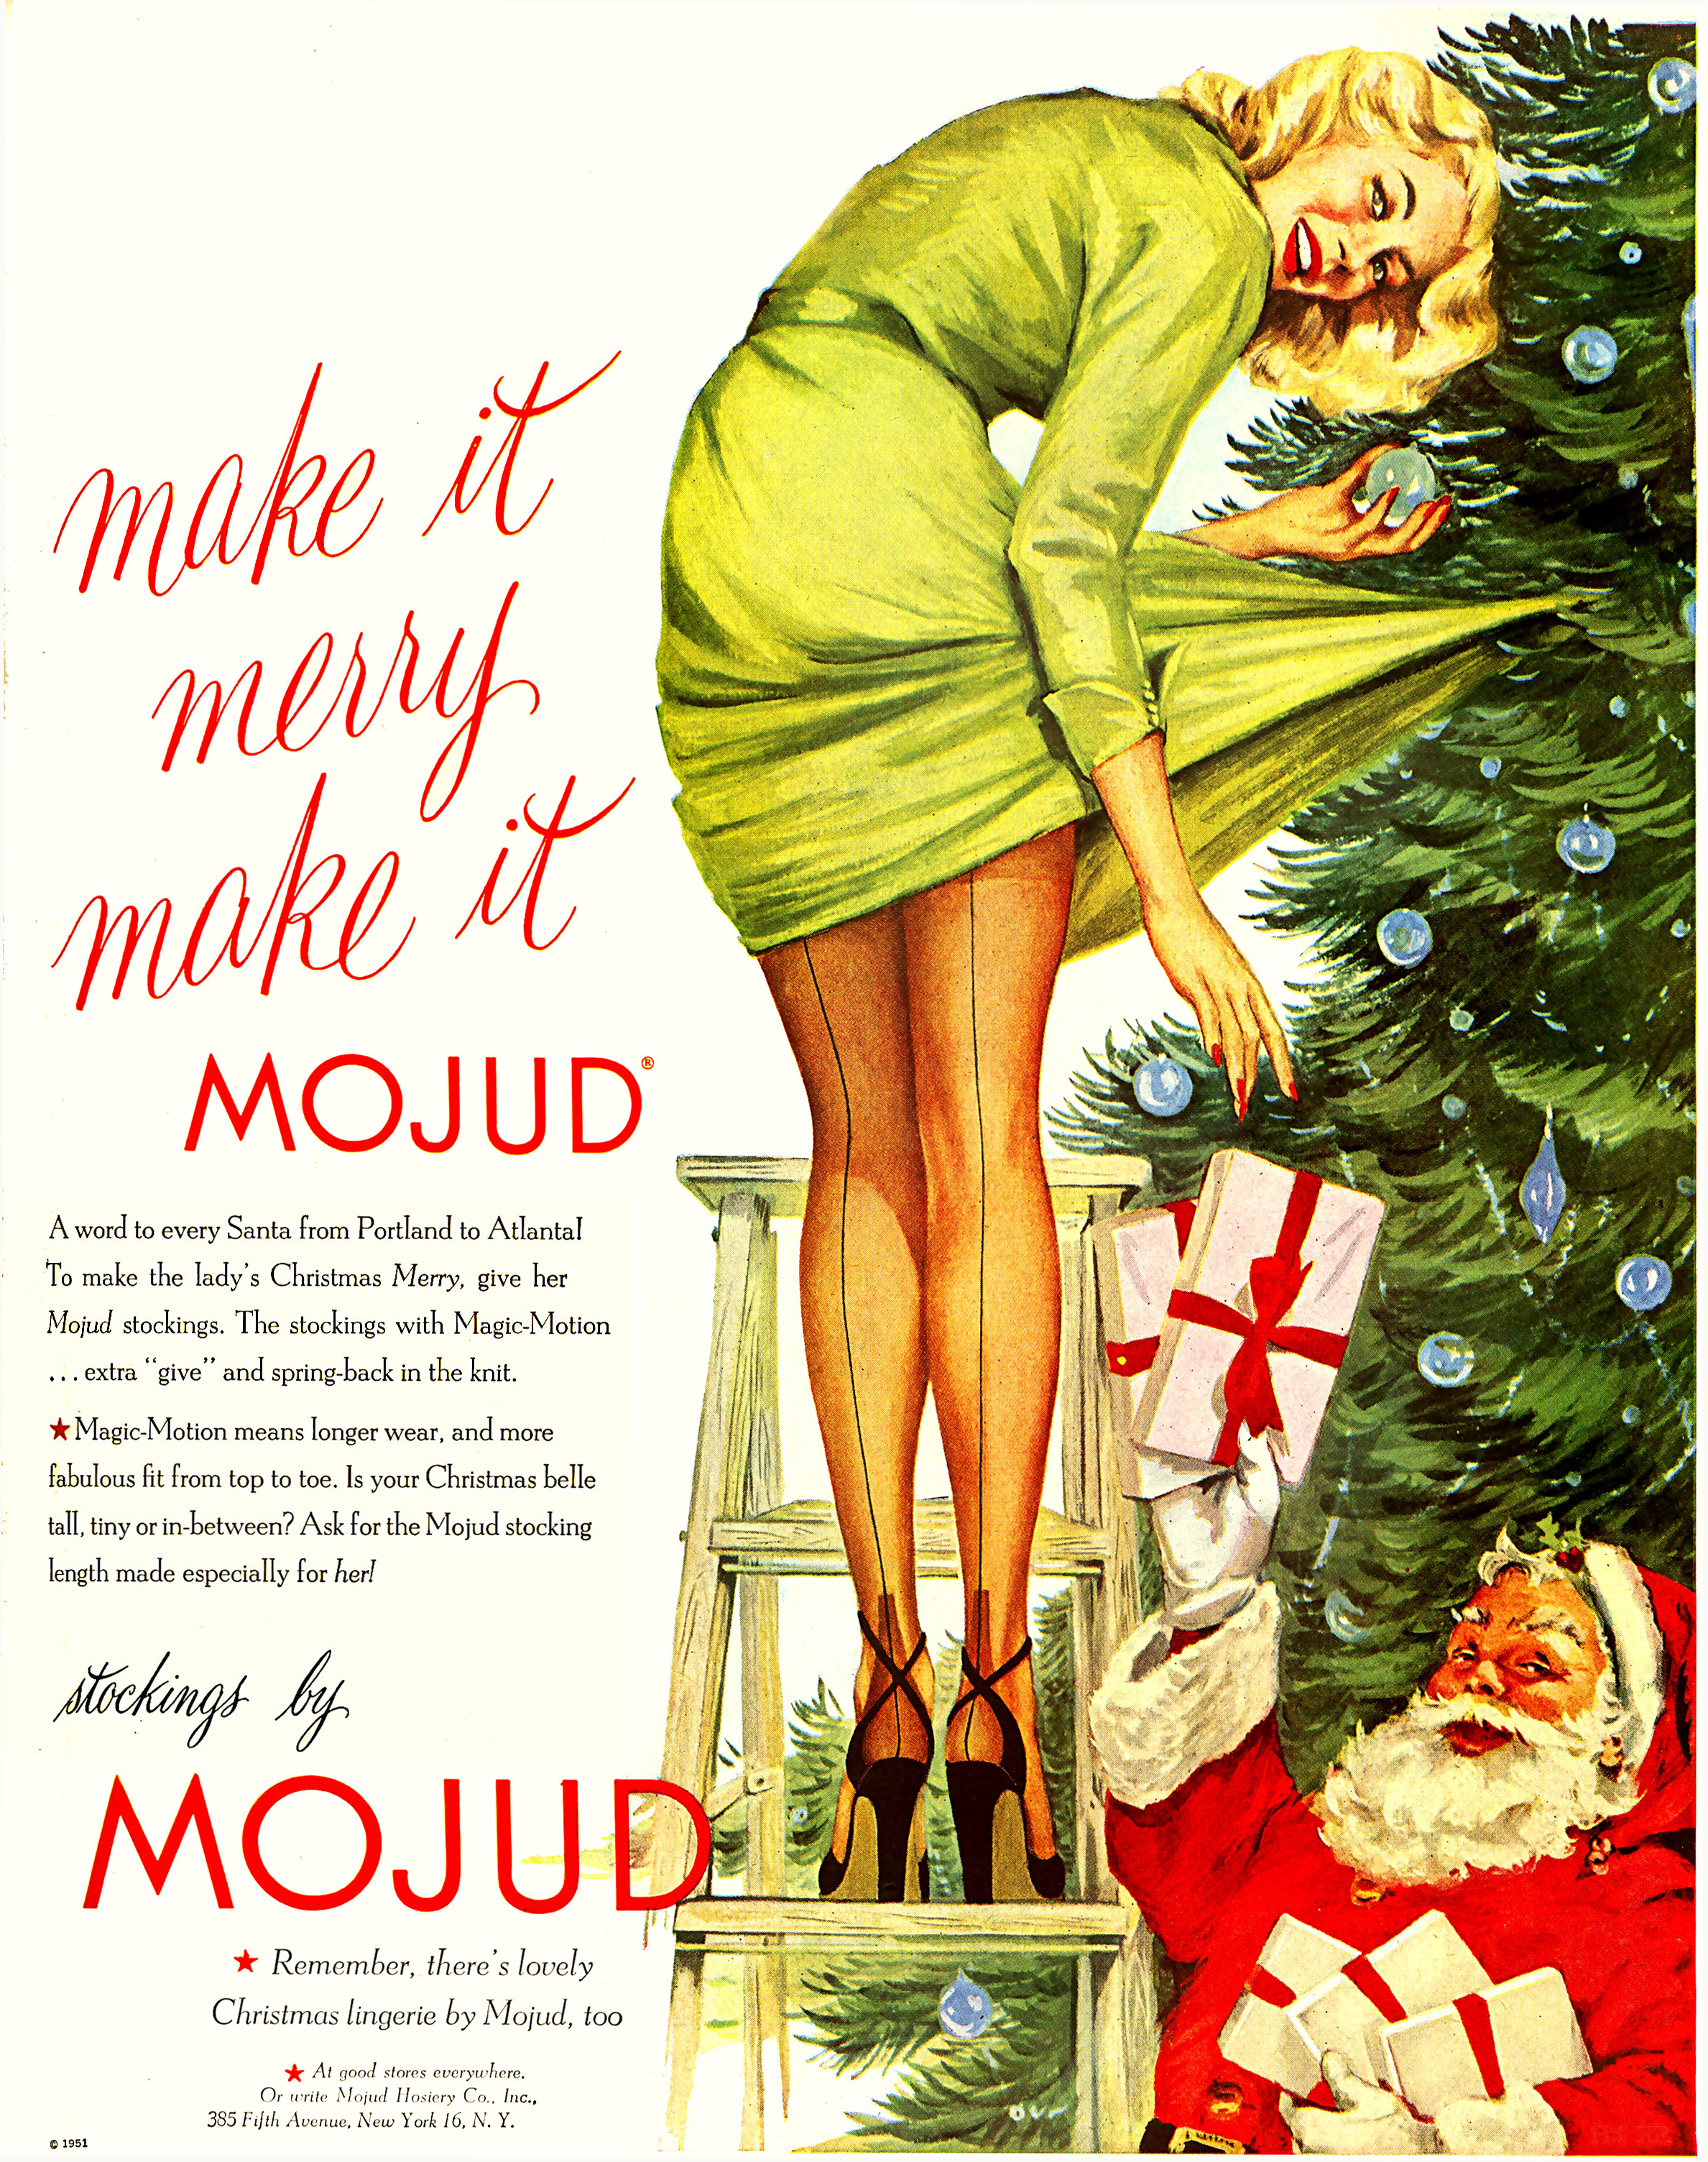 Mojud Stockings Christmas Girl In High Heels 1951 | Sex Appeal Vintage Ads and Covers 1891-1970